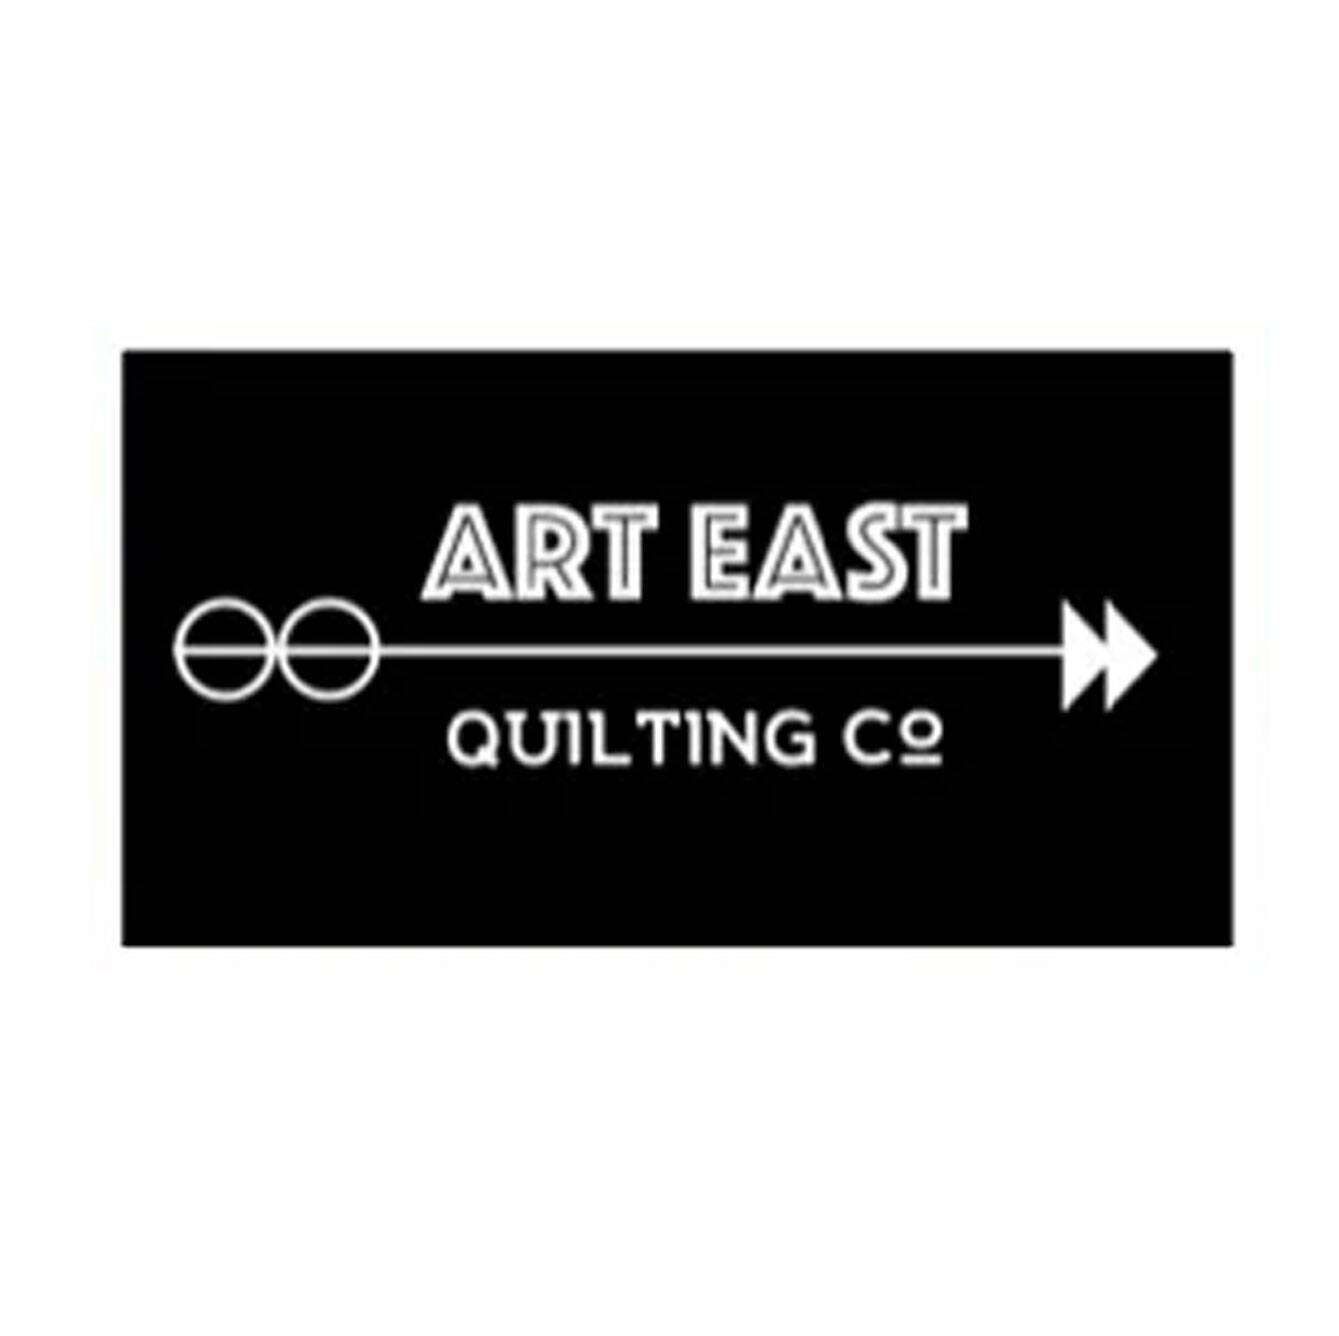 Art East Quilting Co